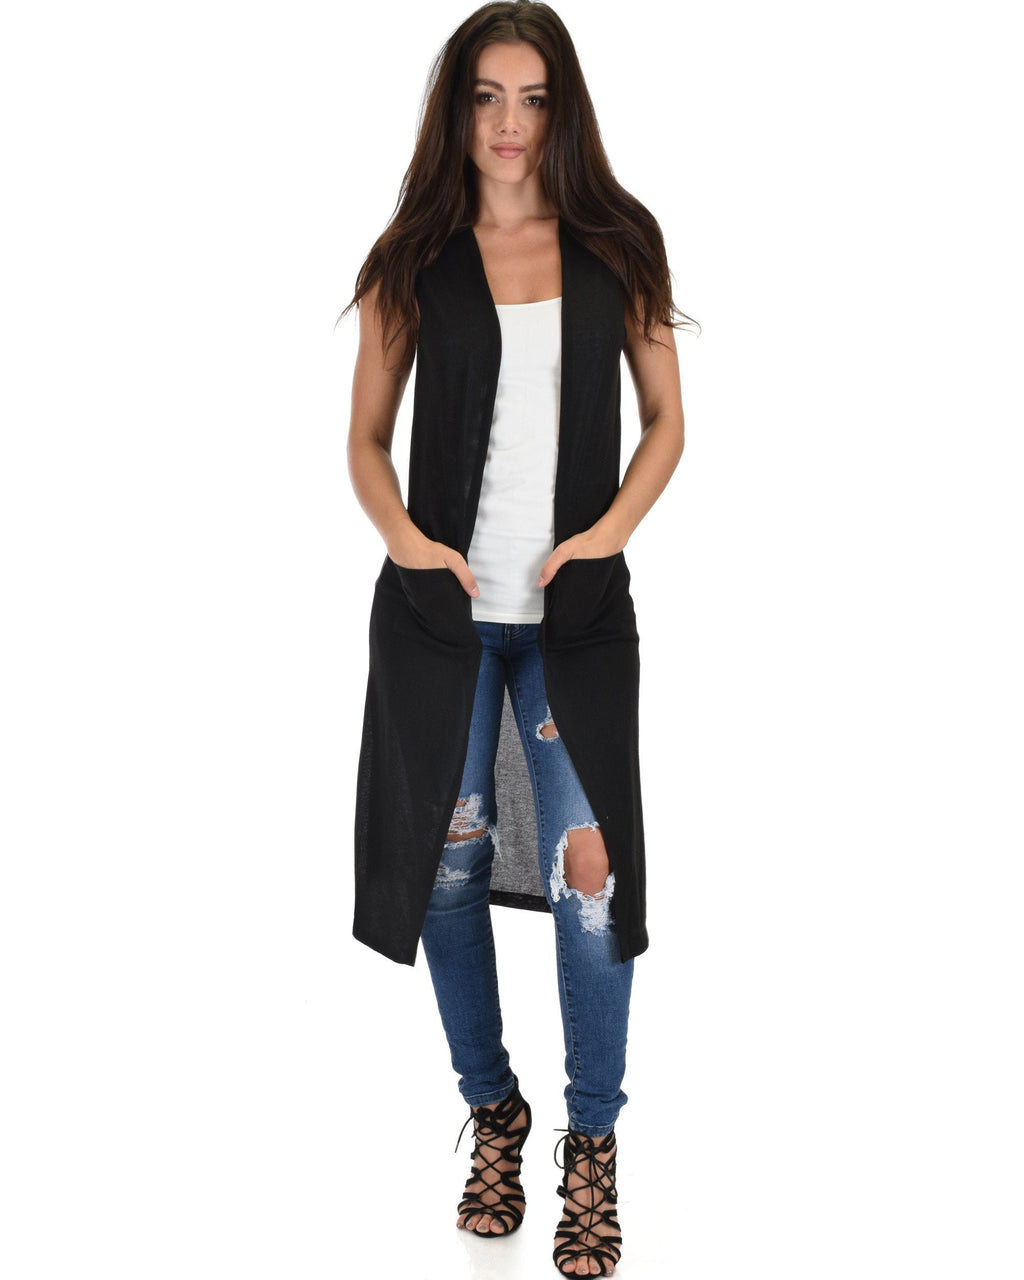 Long-line Cardigan Vest With Pockets